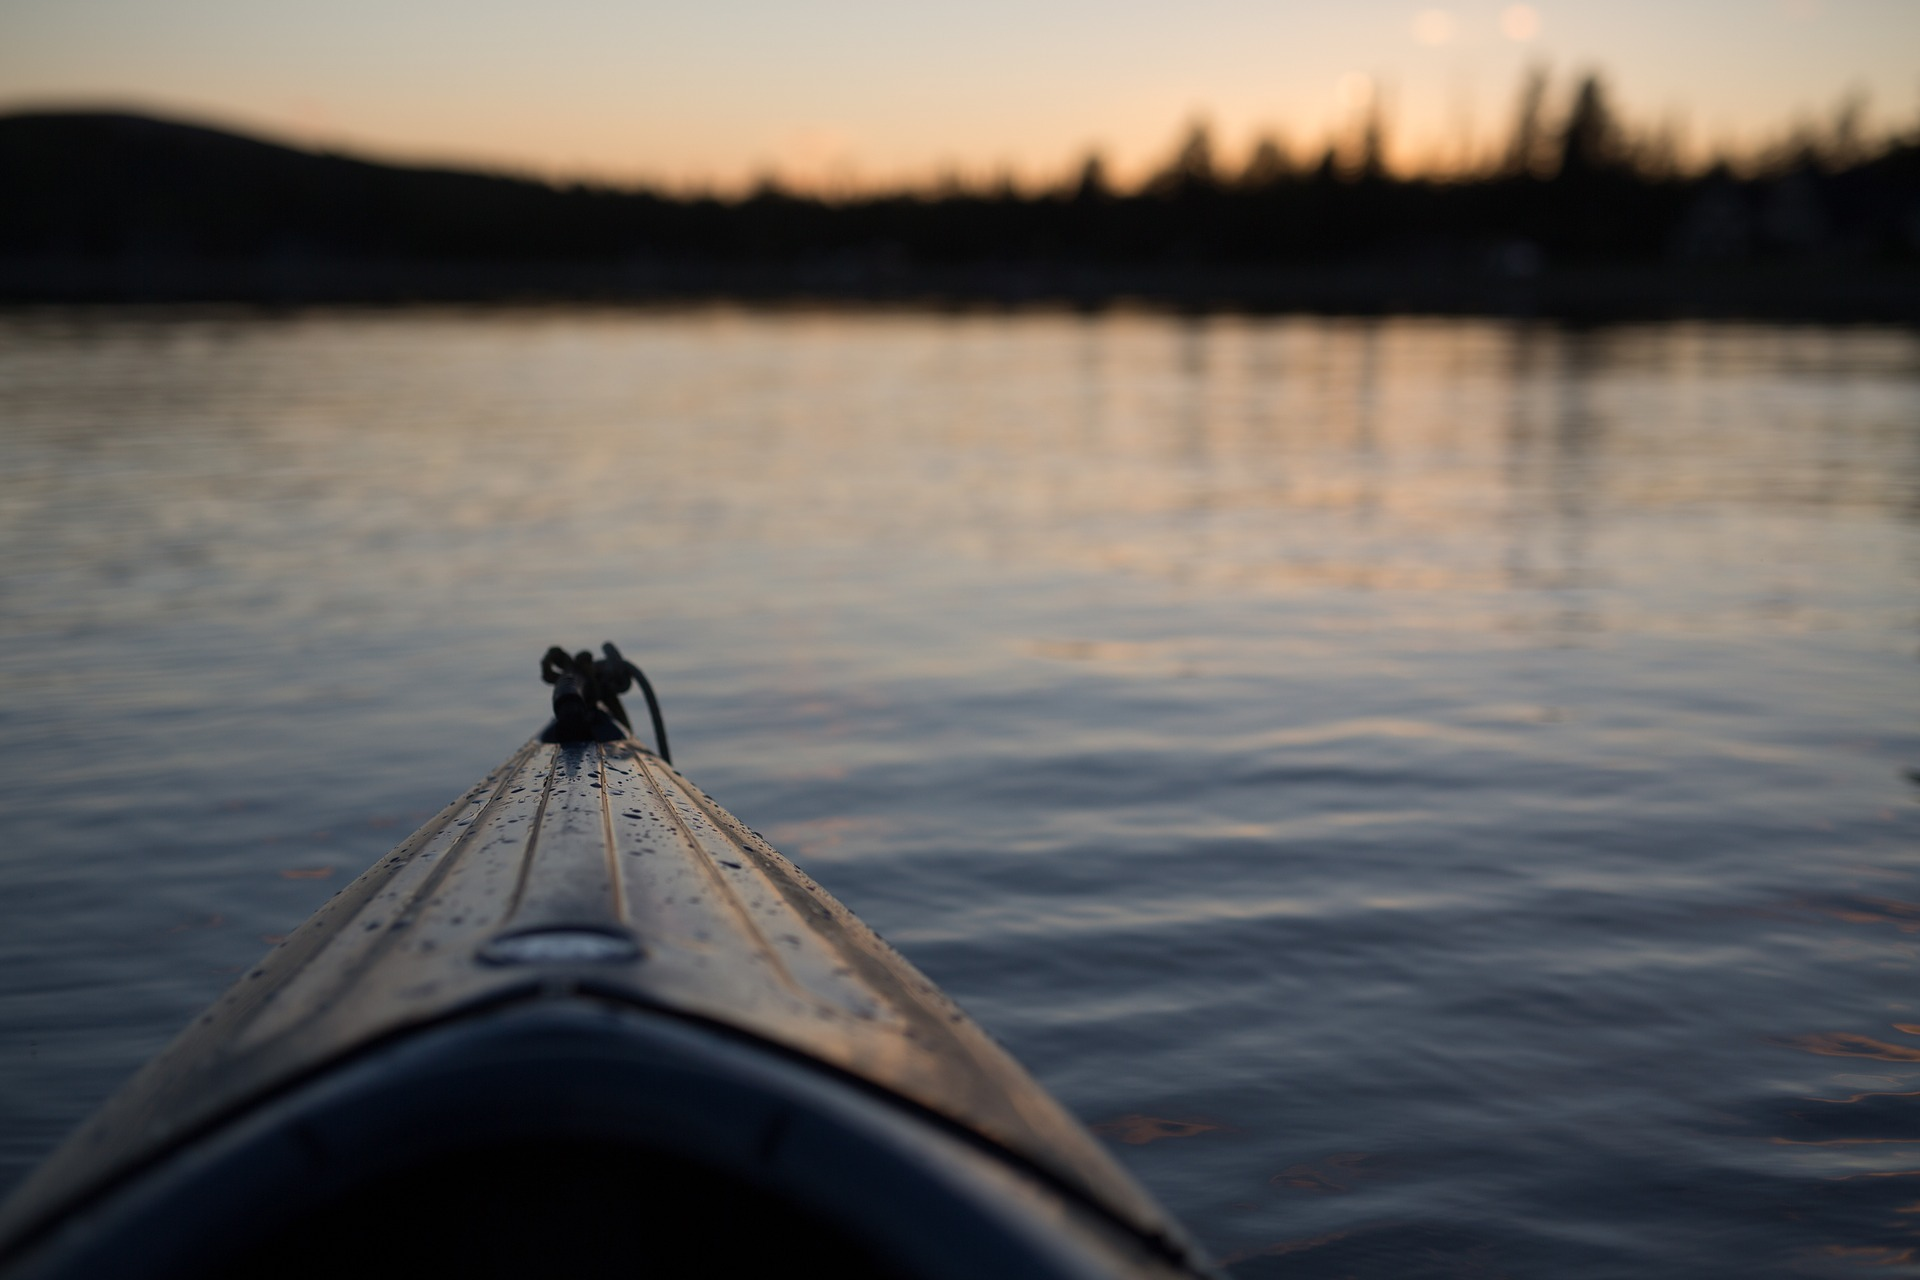 Front of canoe boat in water.